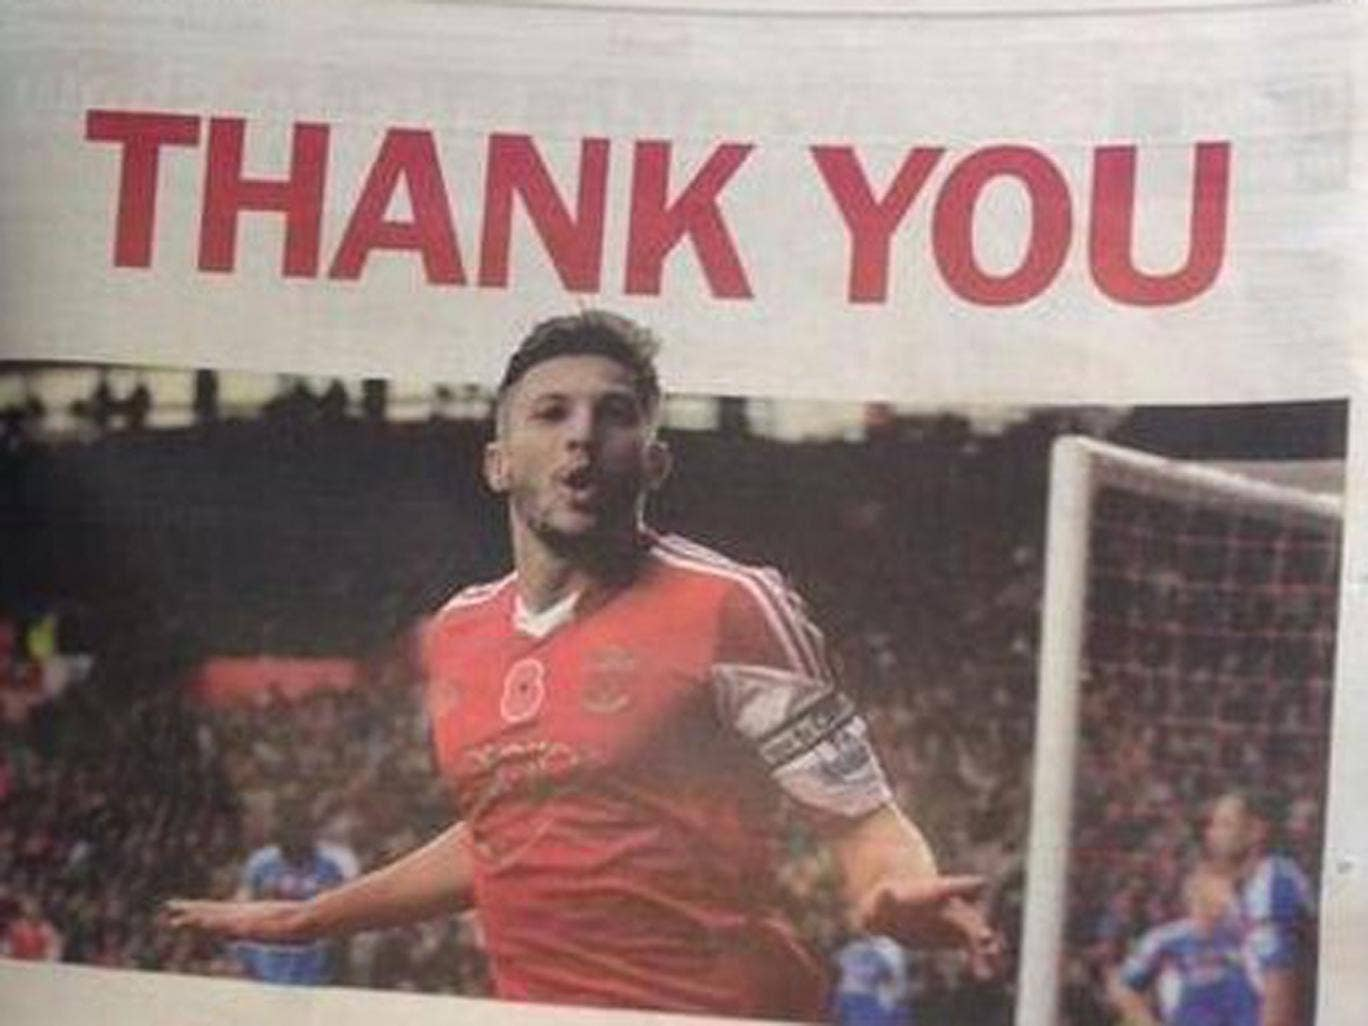 Liverpool new boy Adam Lallana has taken out a full page advert in the Daily Echo to say thank you to Southampton fans